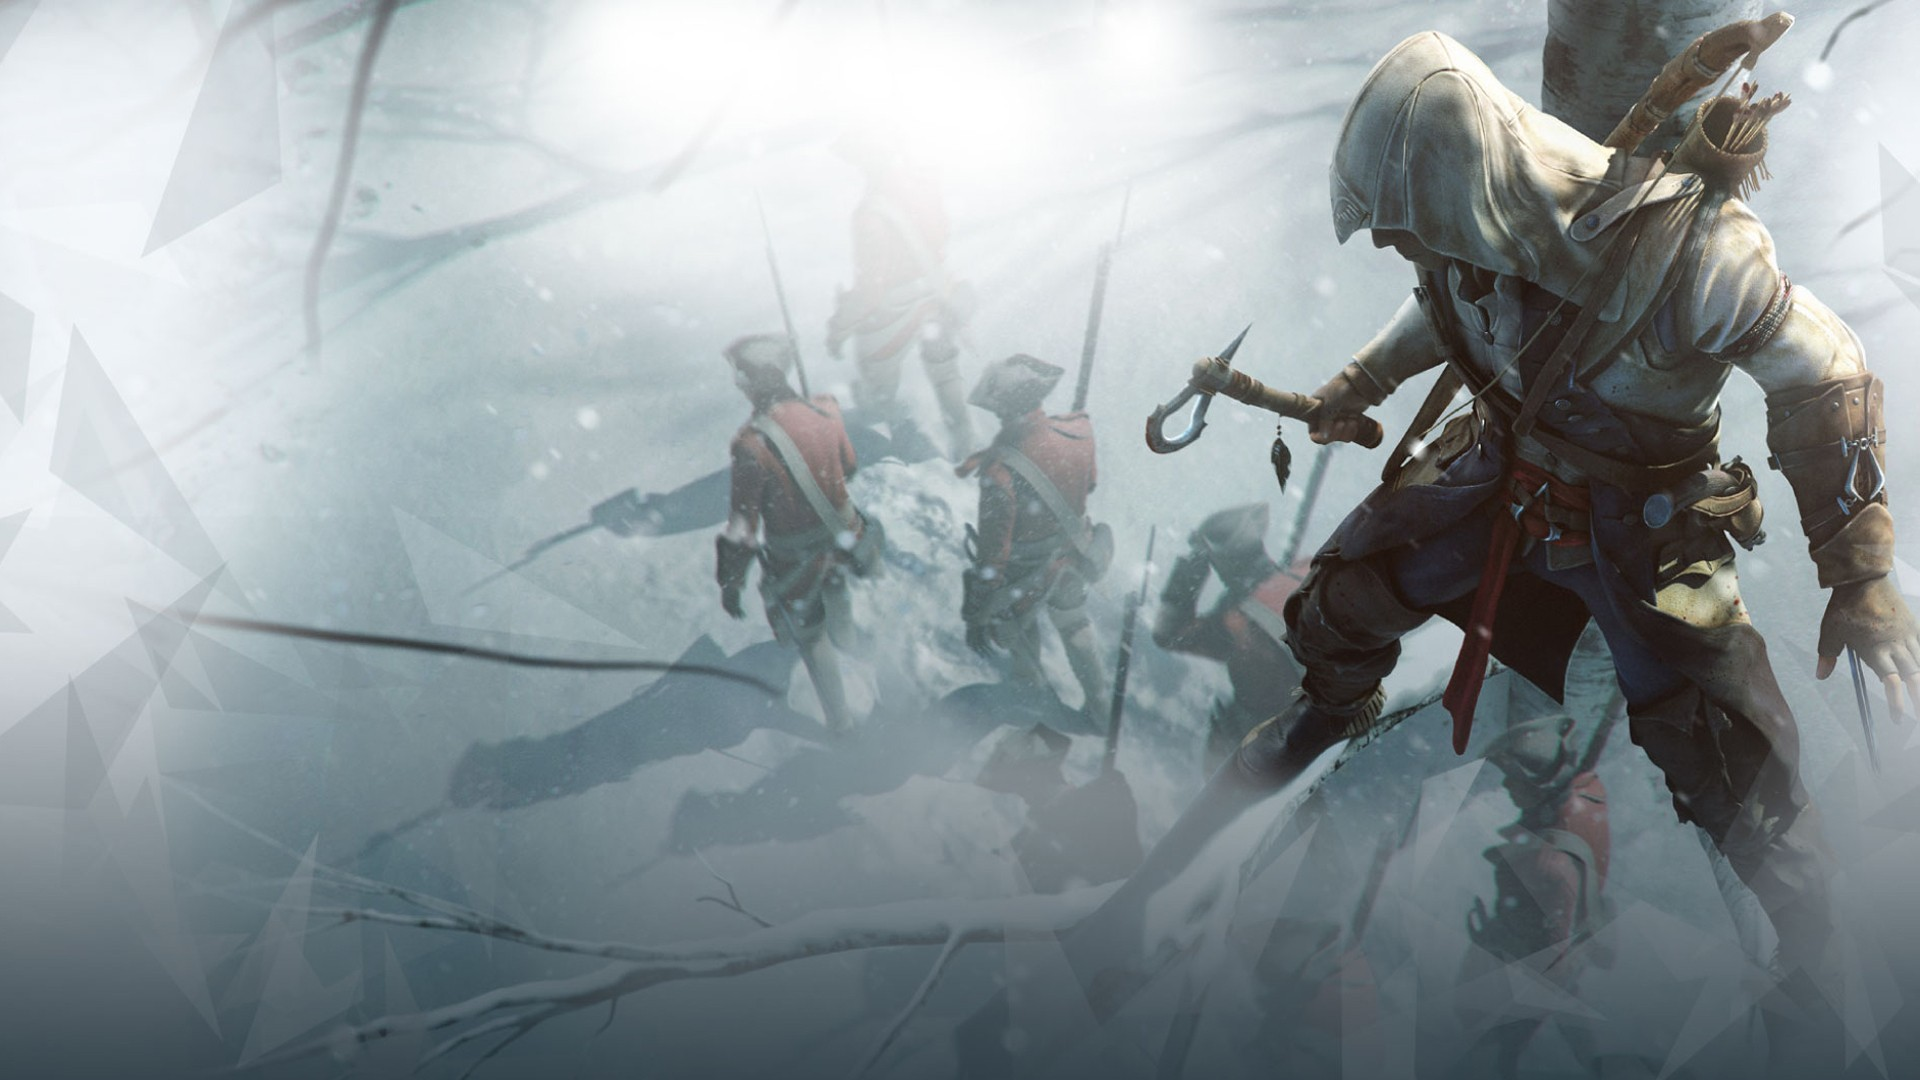 1920x1200 Connor In Assassins Creed 3